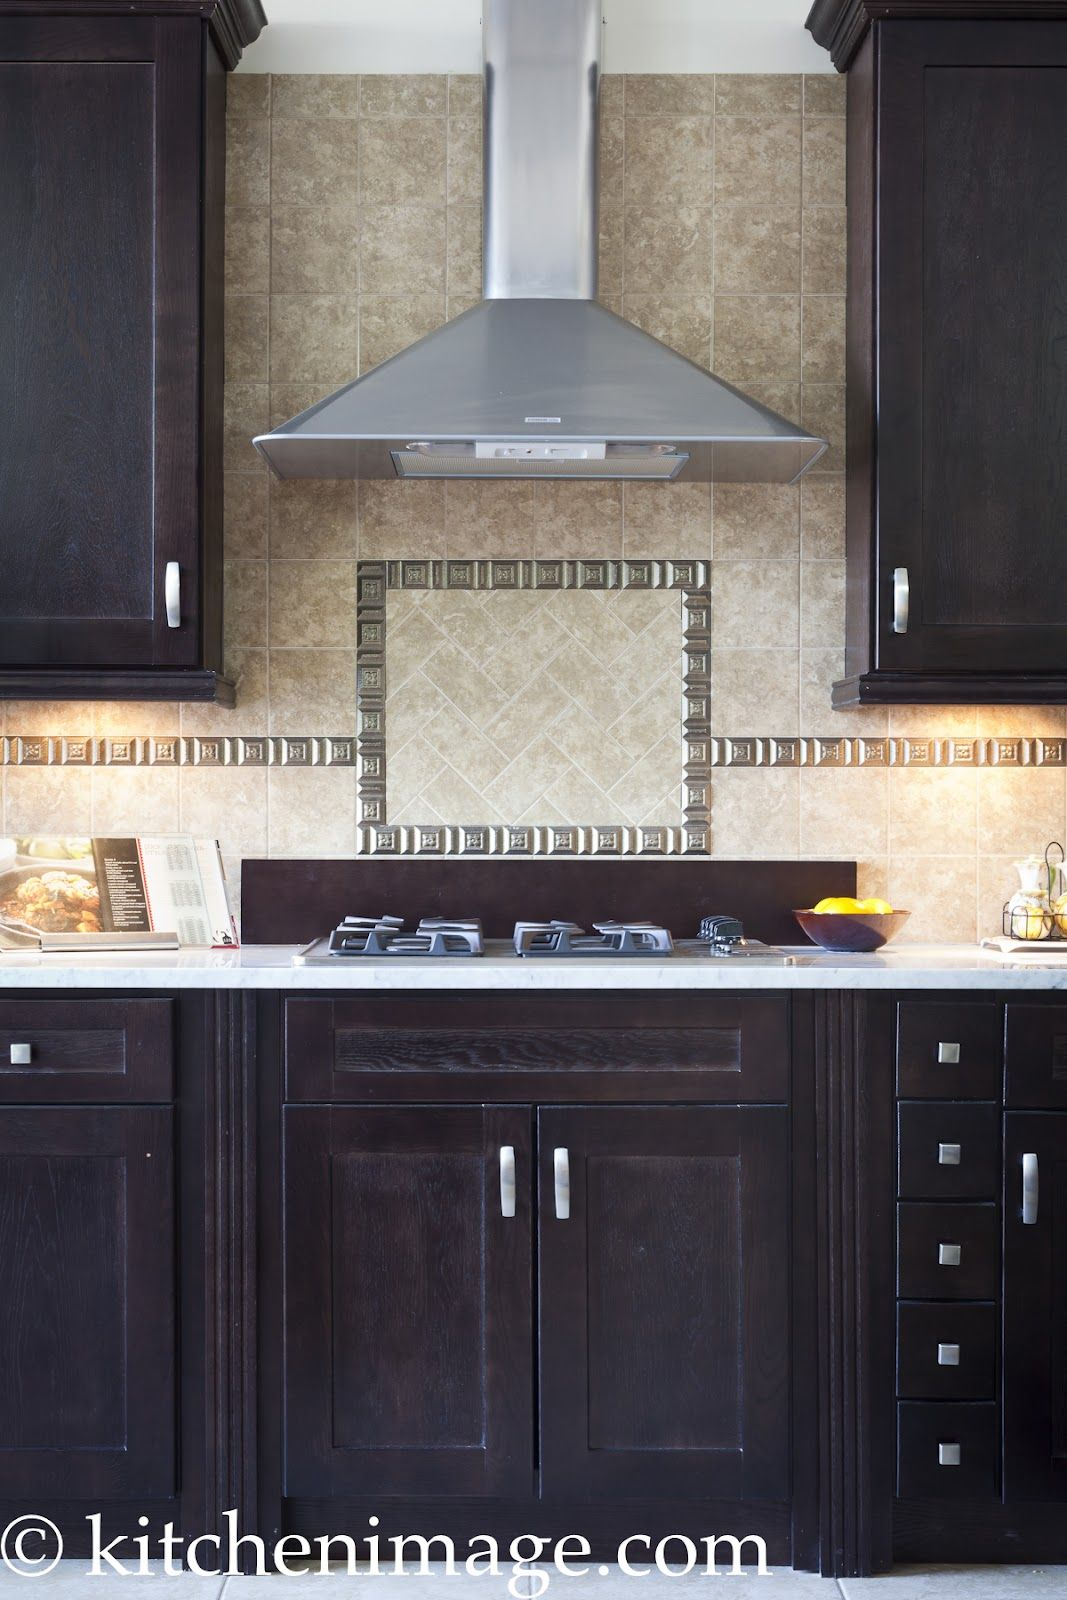 Great work by one of our dealer, Kitchen Image of New York